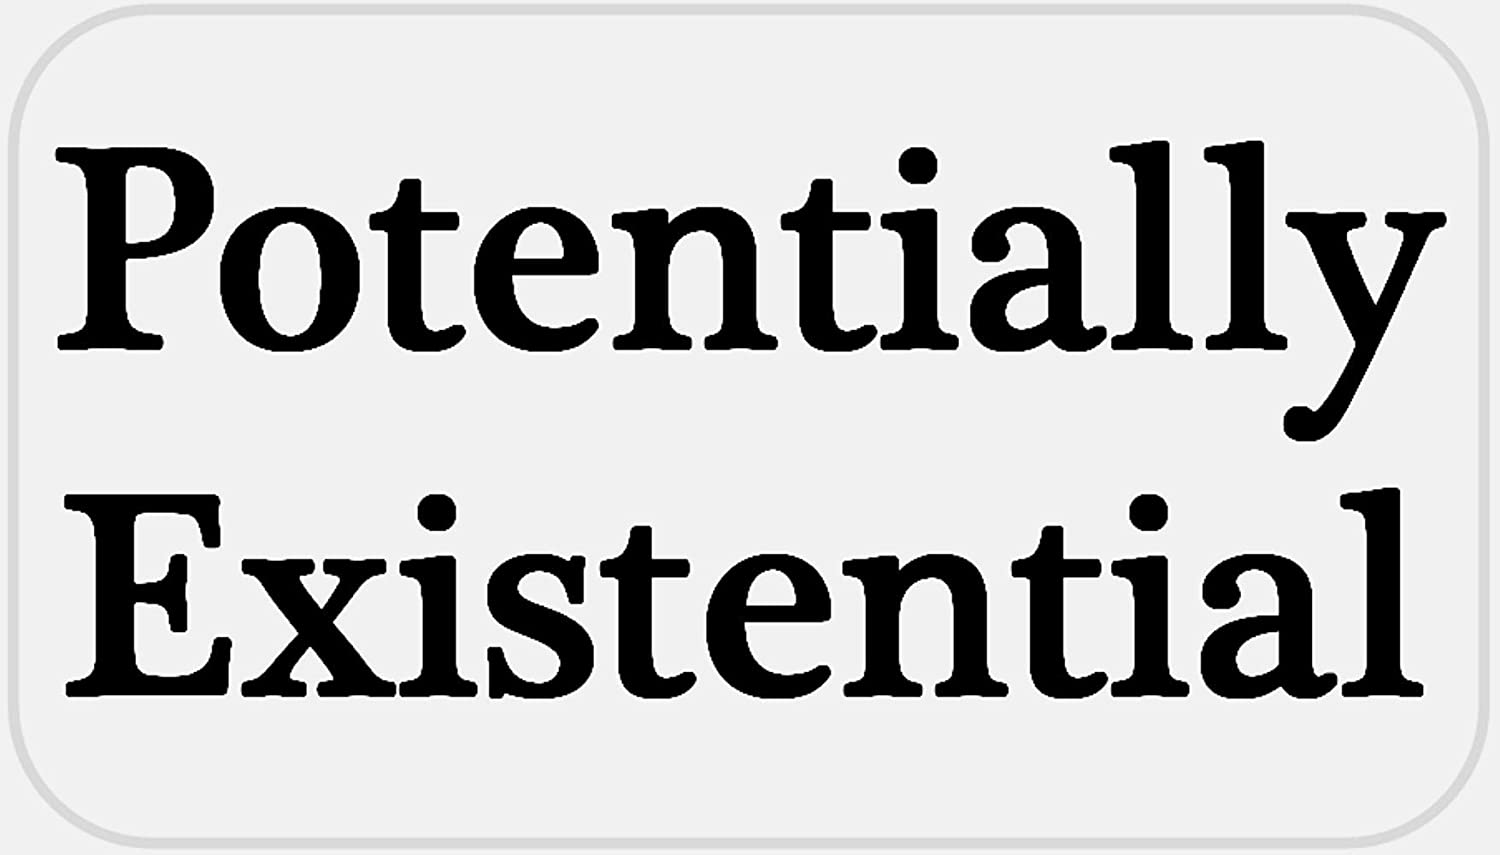 Existentialism Potentially Existential 25 Stickers Pack 2.25 x 1.25 inches